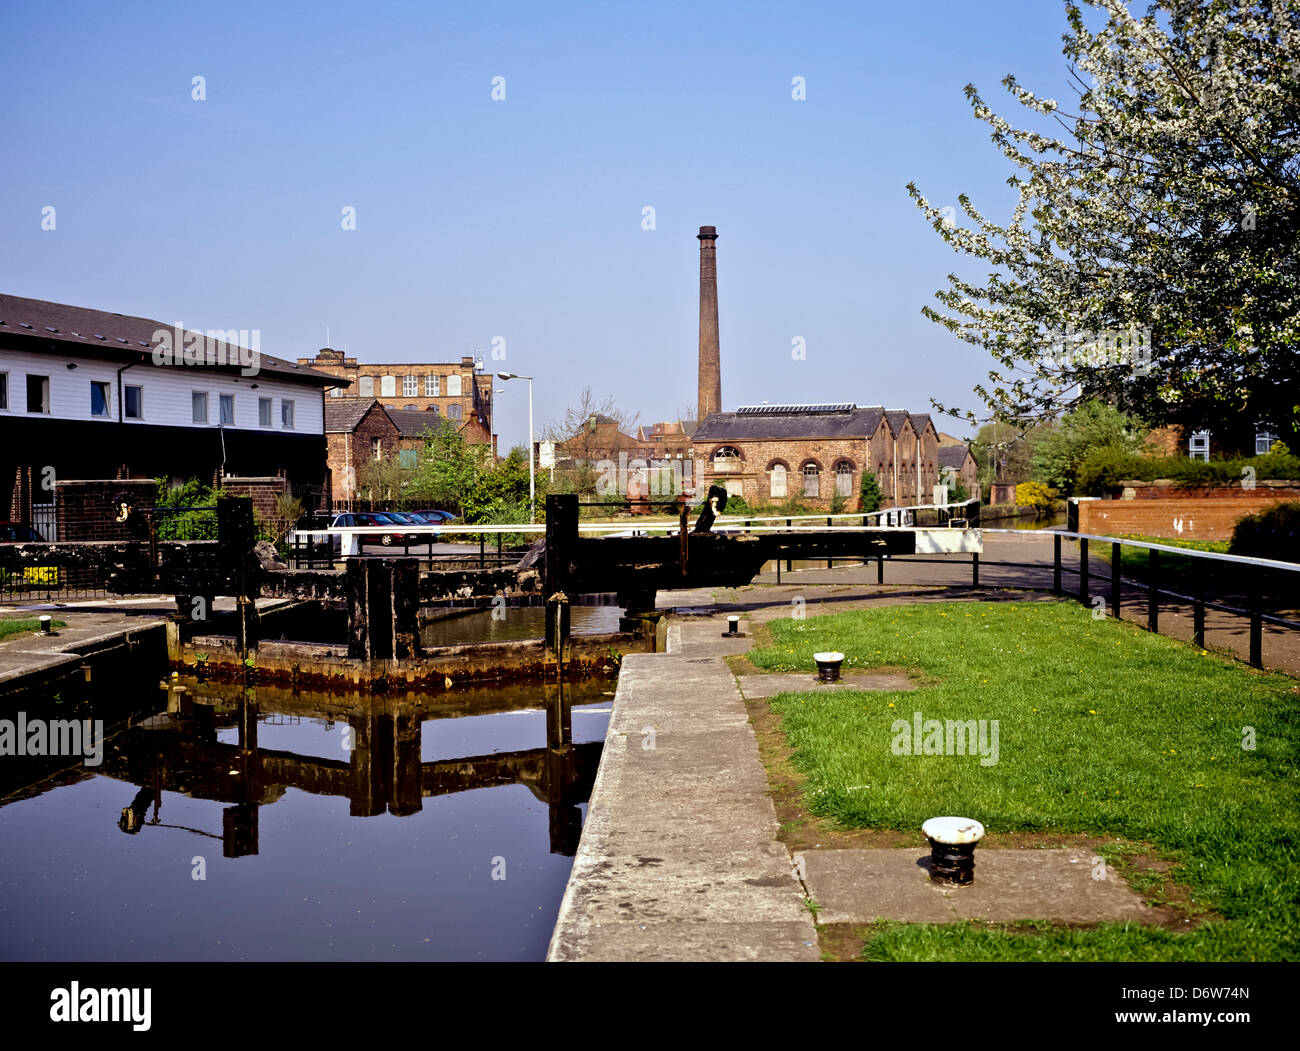 8446. Lock on the Leeds & Liverpool Canal, Wigan, Greater Manchester, England, Europe - Stock Image